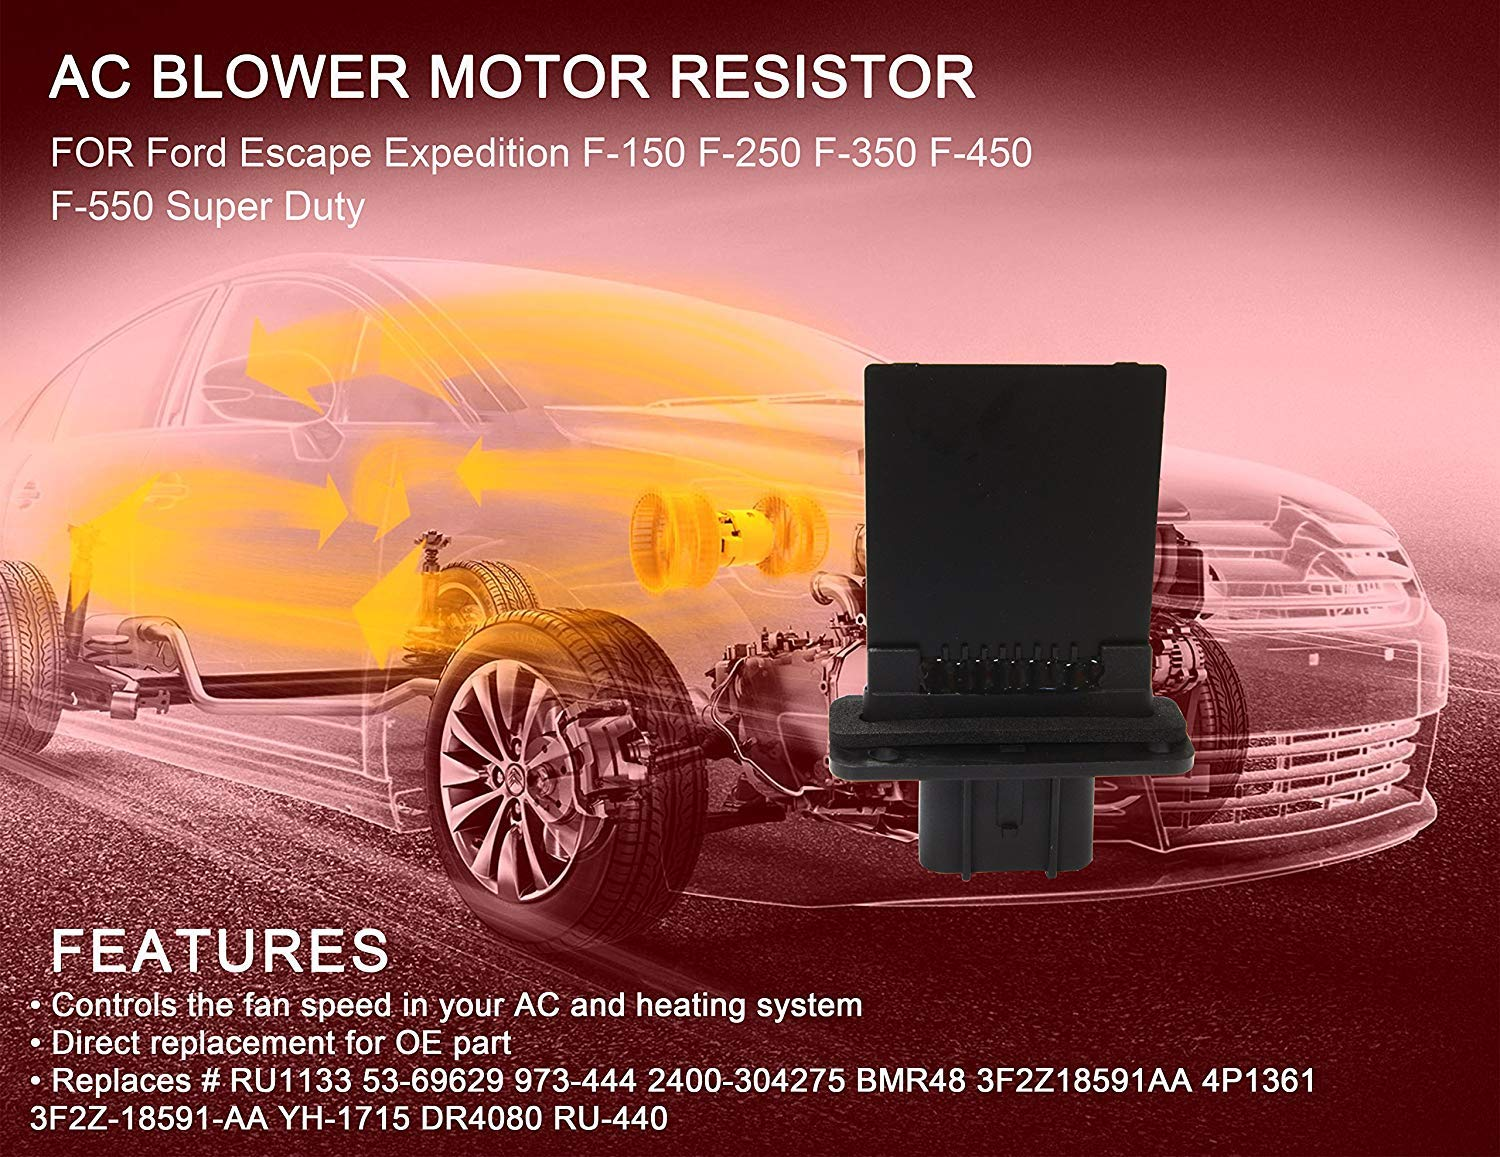 GOHAWKTEQ Replaces # 3F2Z18591AA YH-1715 HVAC Blower Motor Resistor G005R for Ford Escape Expedition F150 F250 F350 F450 F550 Super Duty